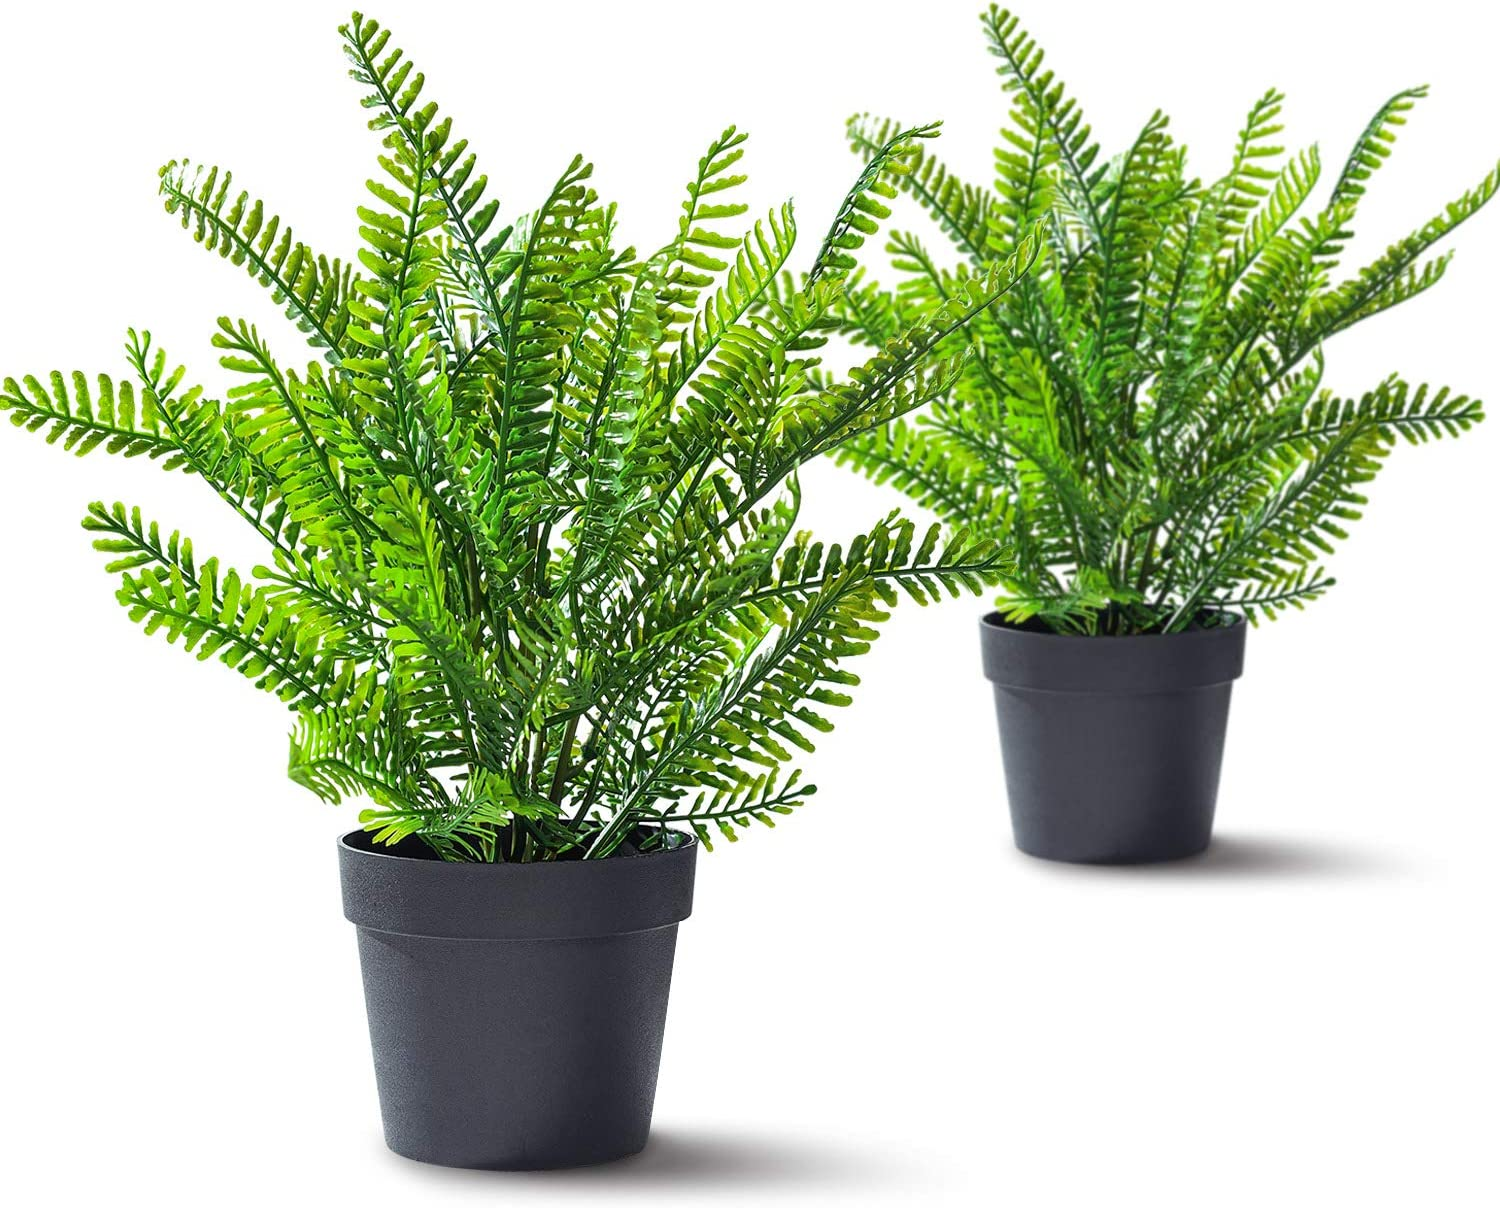 RED SECRET R Artificial Boston Fern Plants Small Potted in Black Pot 2 Pack Plastic Fake Green Plants for Office Home Decor Faux Plants for Hanging Baskets